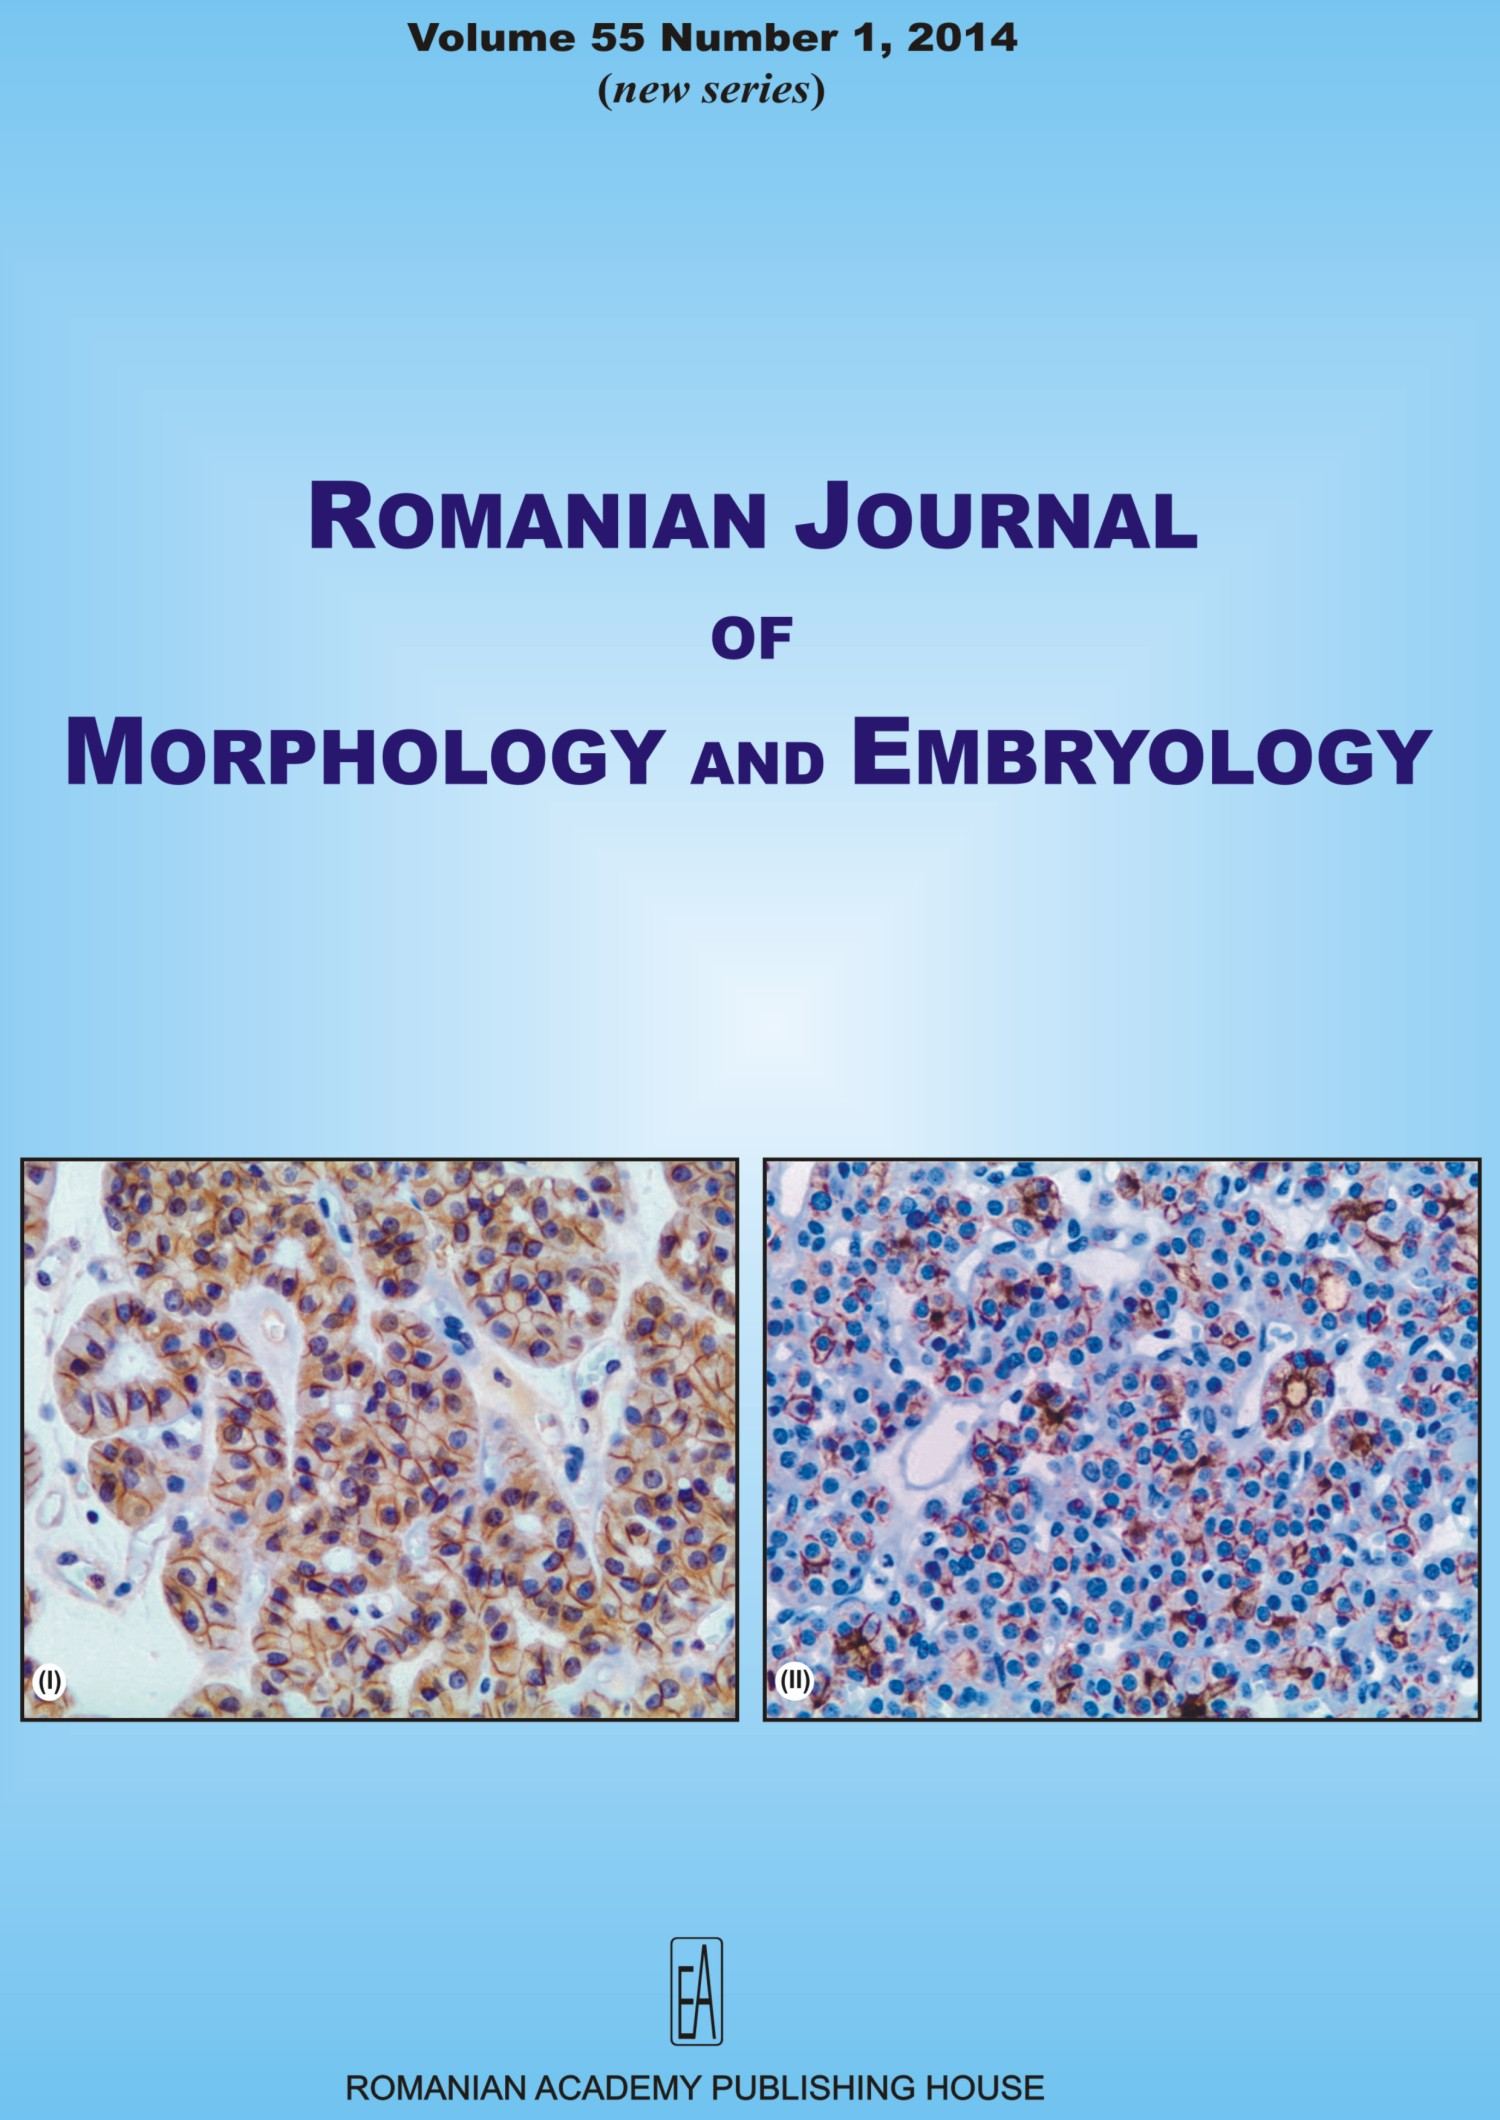 Romanian Journal of Morphology and Embryology, vol. 55 no. 1, 2014